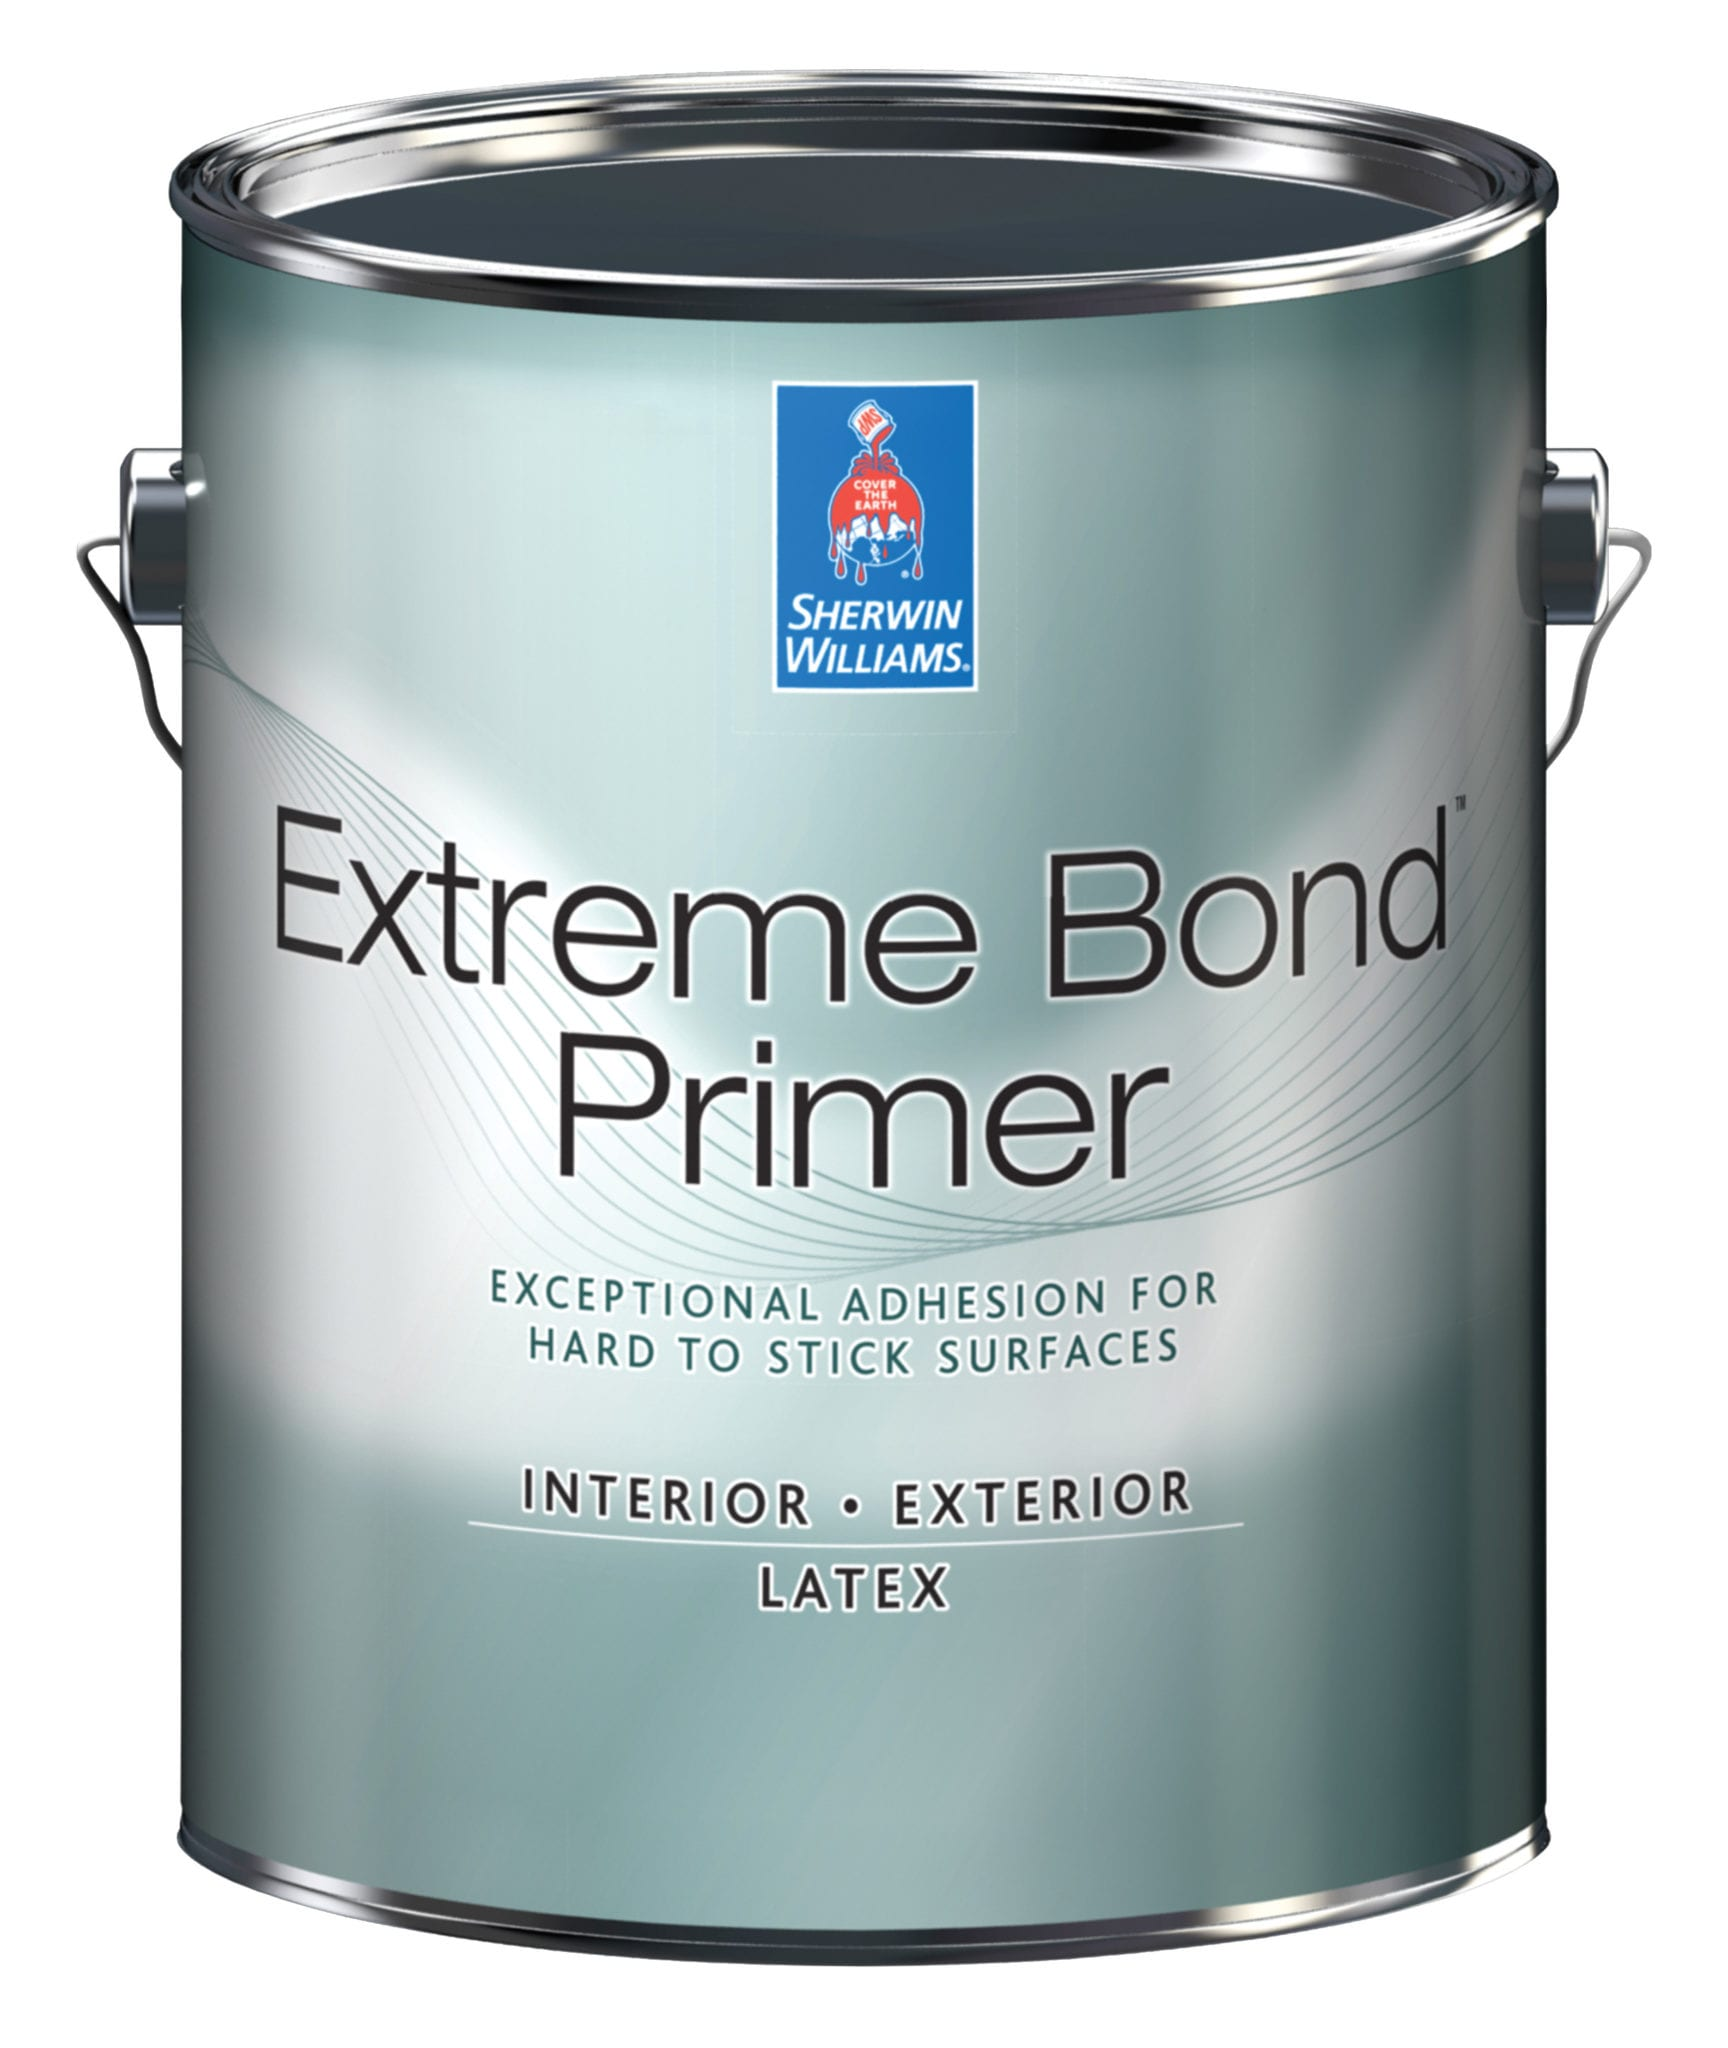 Sherwin Williams New Extreme Bondtm Primer Now Available The Blogging Painters The Blogging